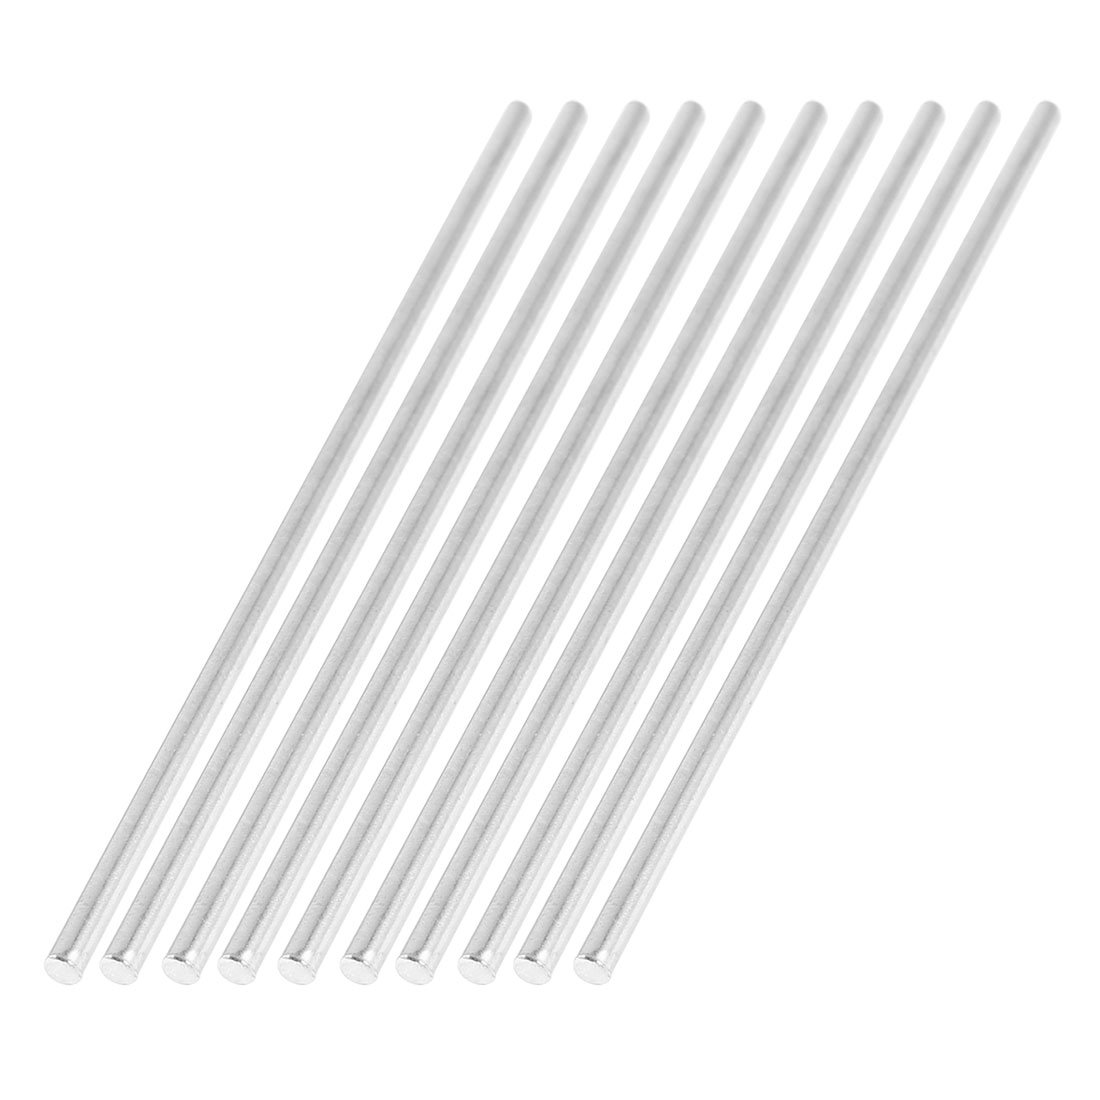 uxcell 10 Pcs Car Model Toy DIY Stainless Steel Axles Rod Bars 2mm x 100mm